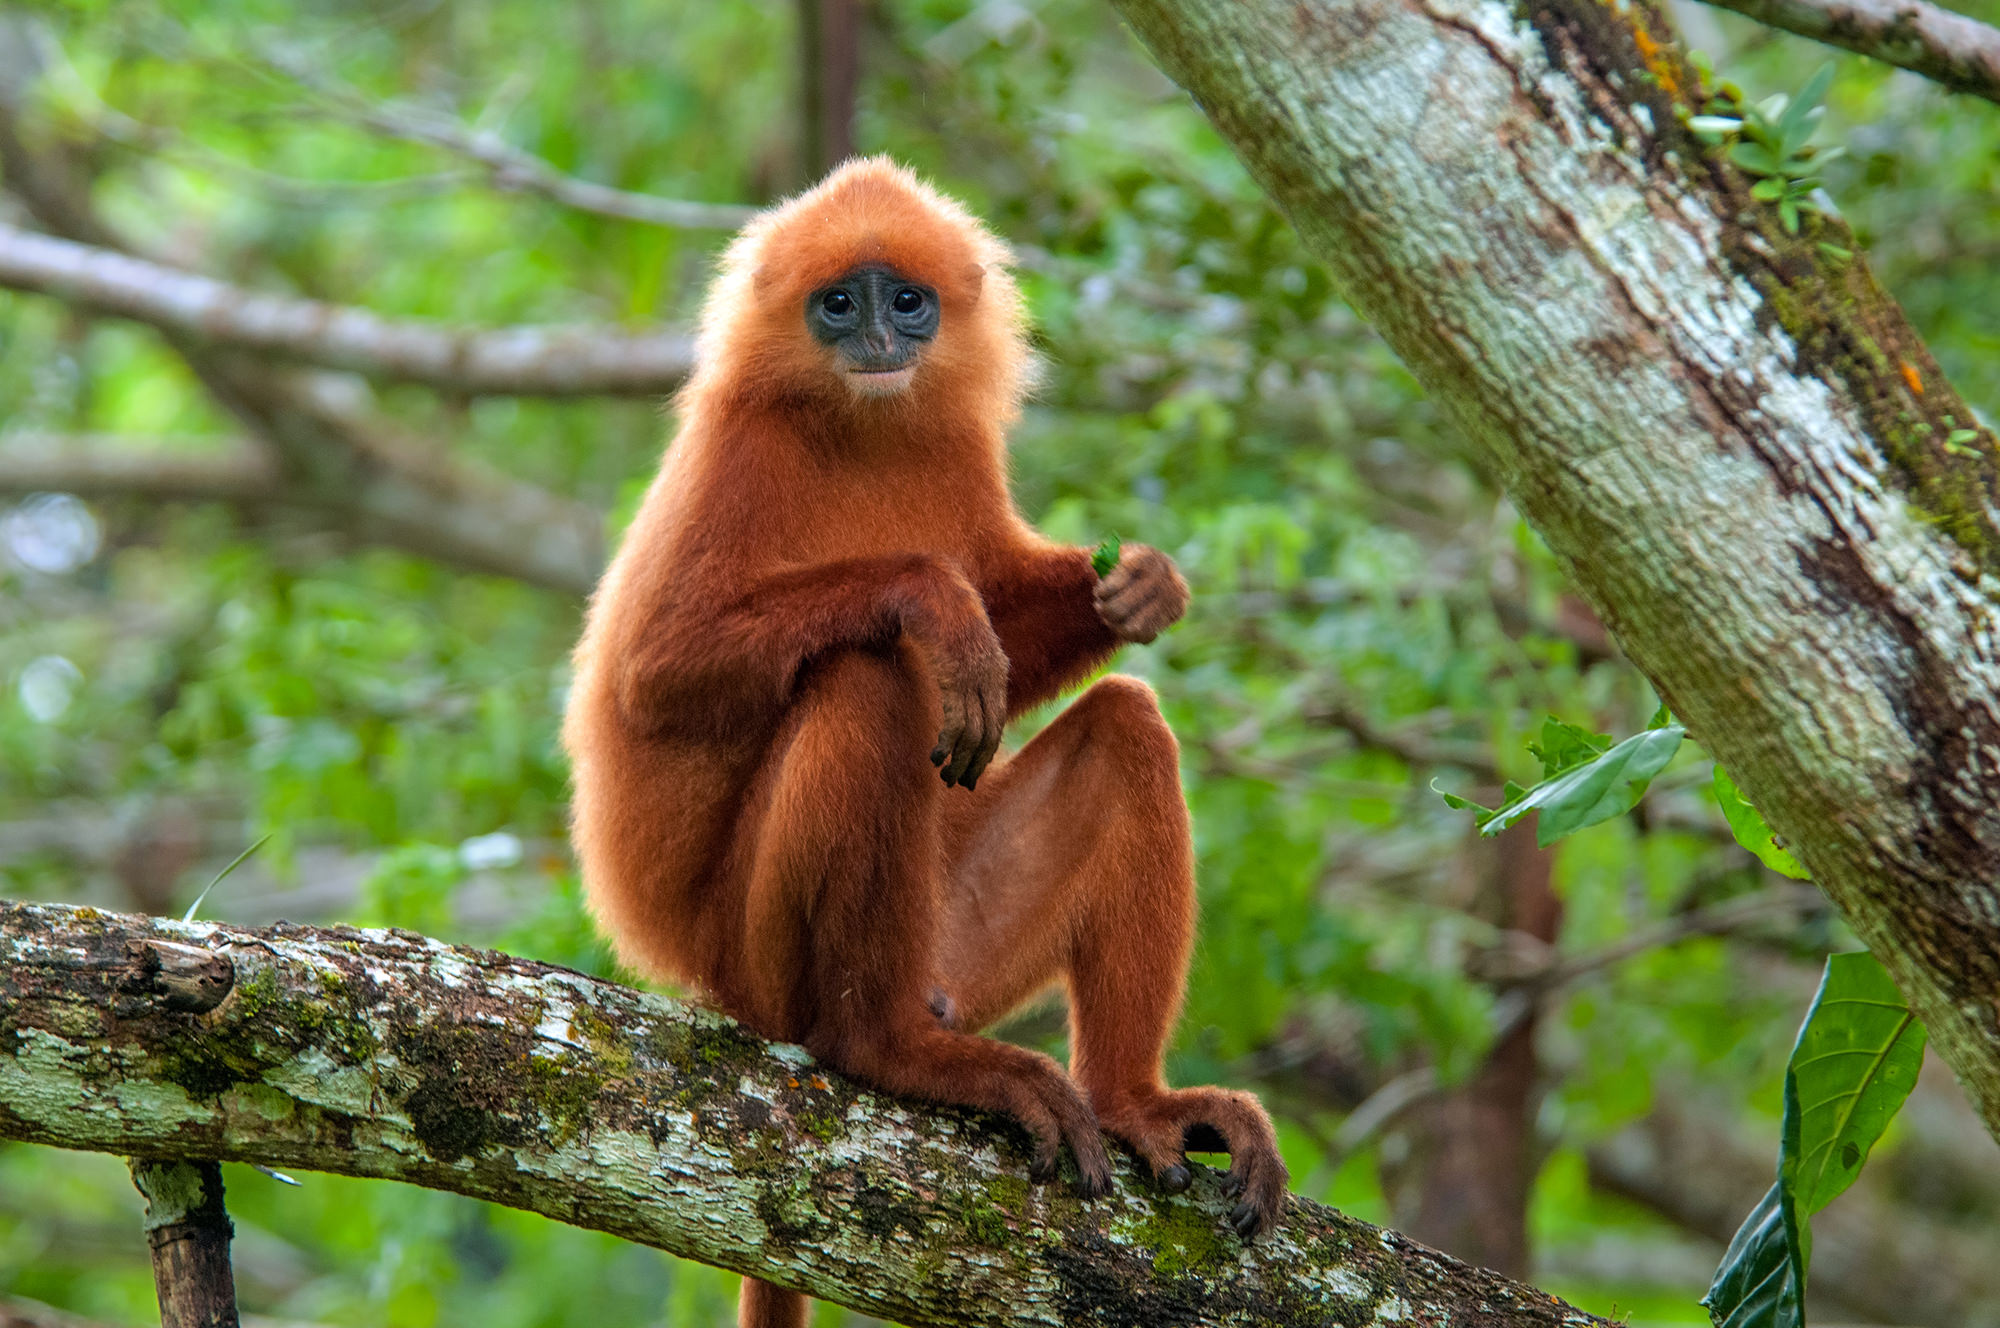 Wildlife watching in Danum Vally - Maroon langur